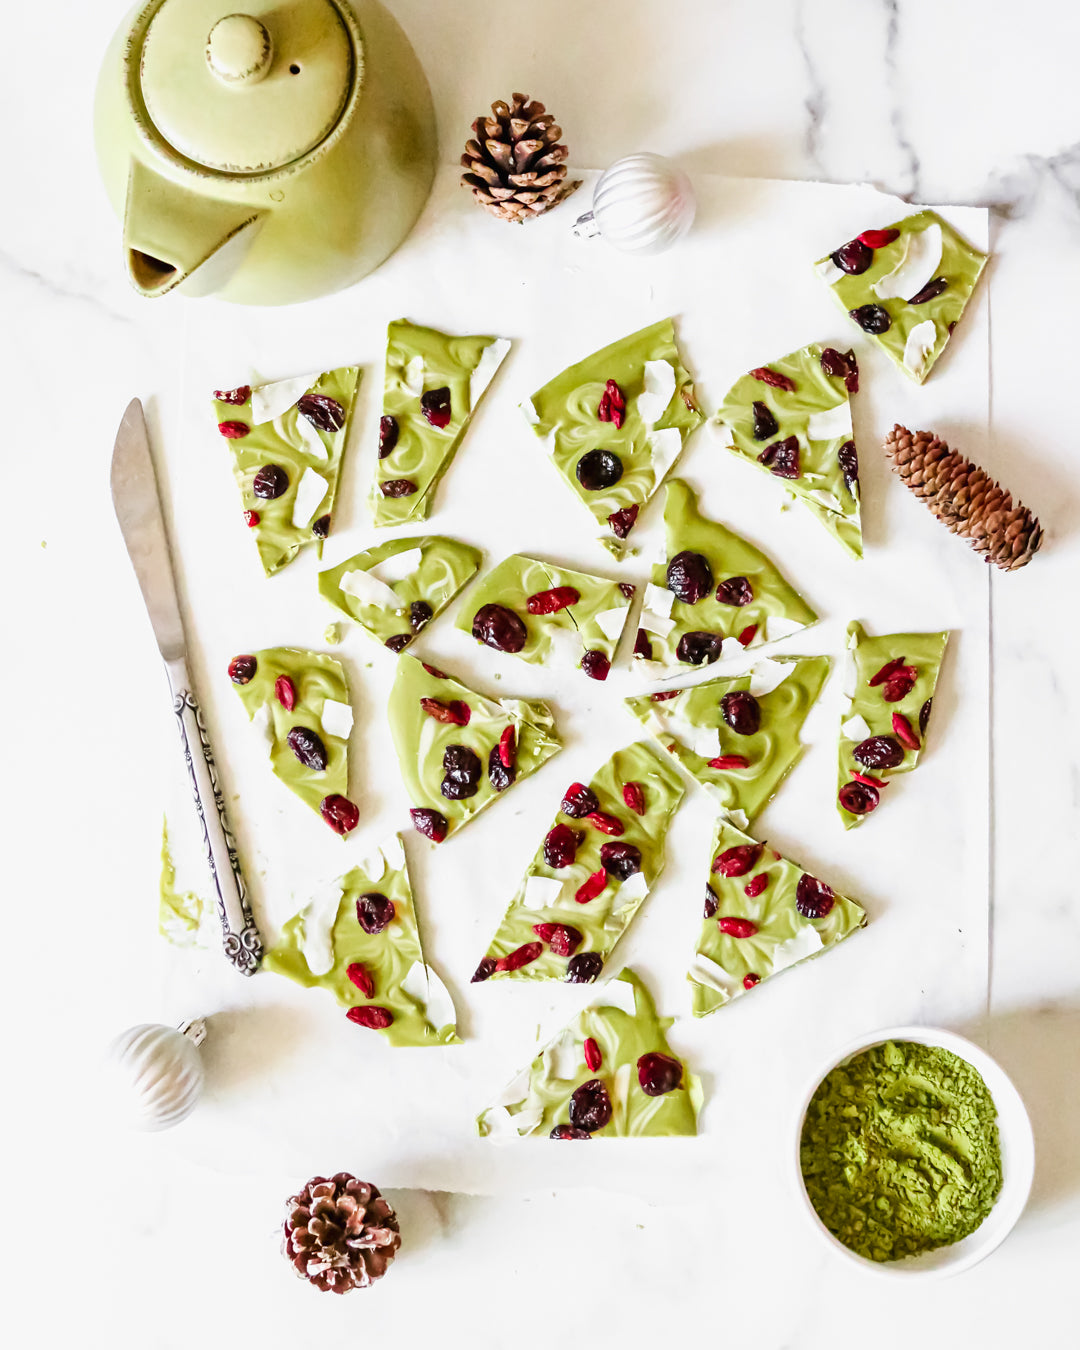 Photo of several pieces of green tea Holiday Bark dessert treats, topped with cranberries and white coconut strips, surrounded by a few decorative pine cones, a small green teapot, a small bowl containing matcha green tea powder, a silver butter knife, and two white Christmas globes, all on a white background